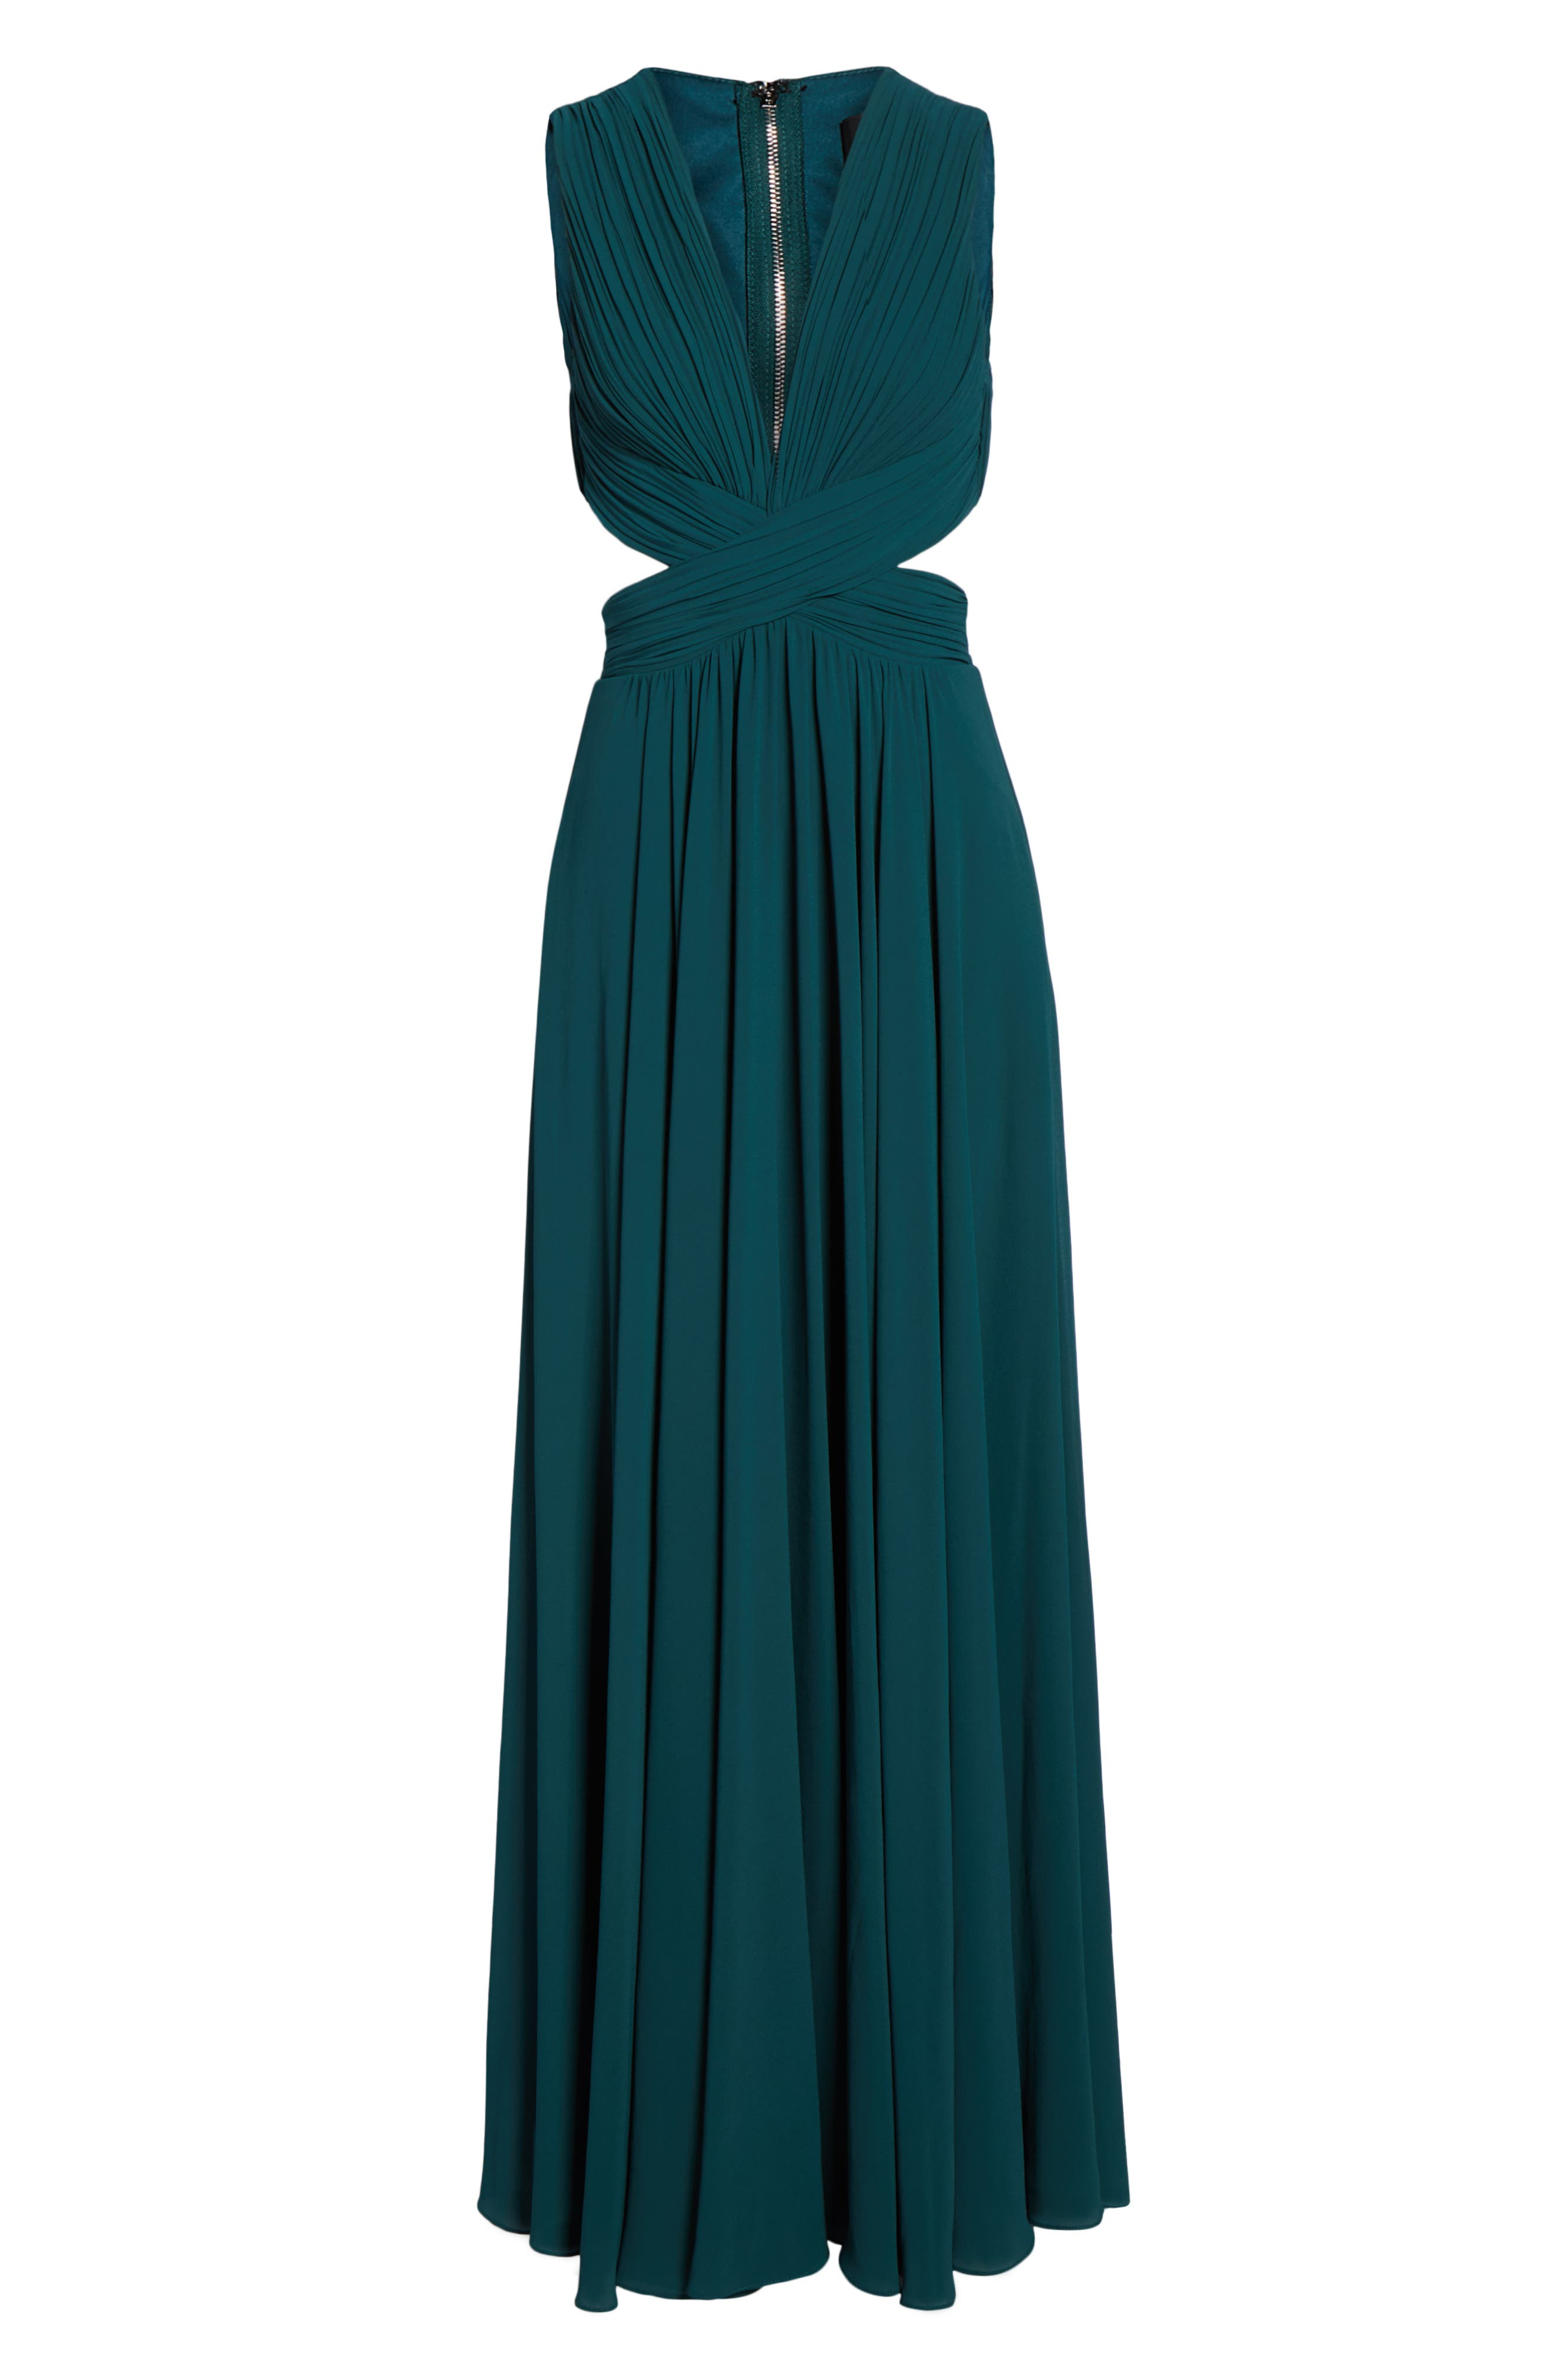 LULUS, Vivid Imagination Chiffon Gown, Alternate thumbnail 7, color, FOREST GREEN